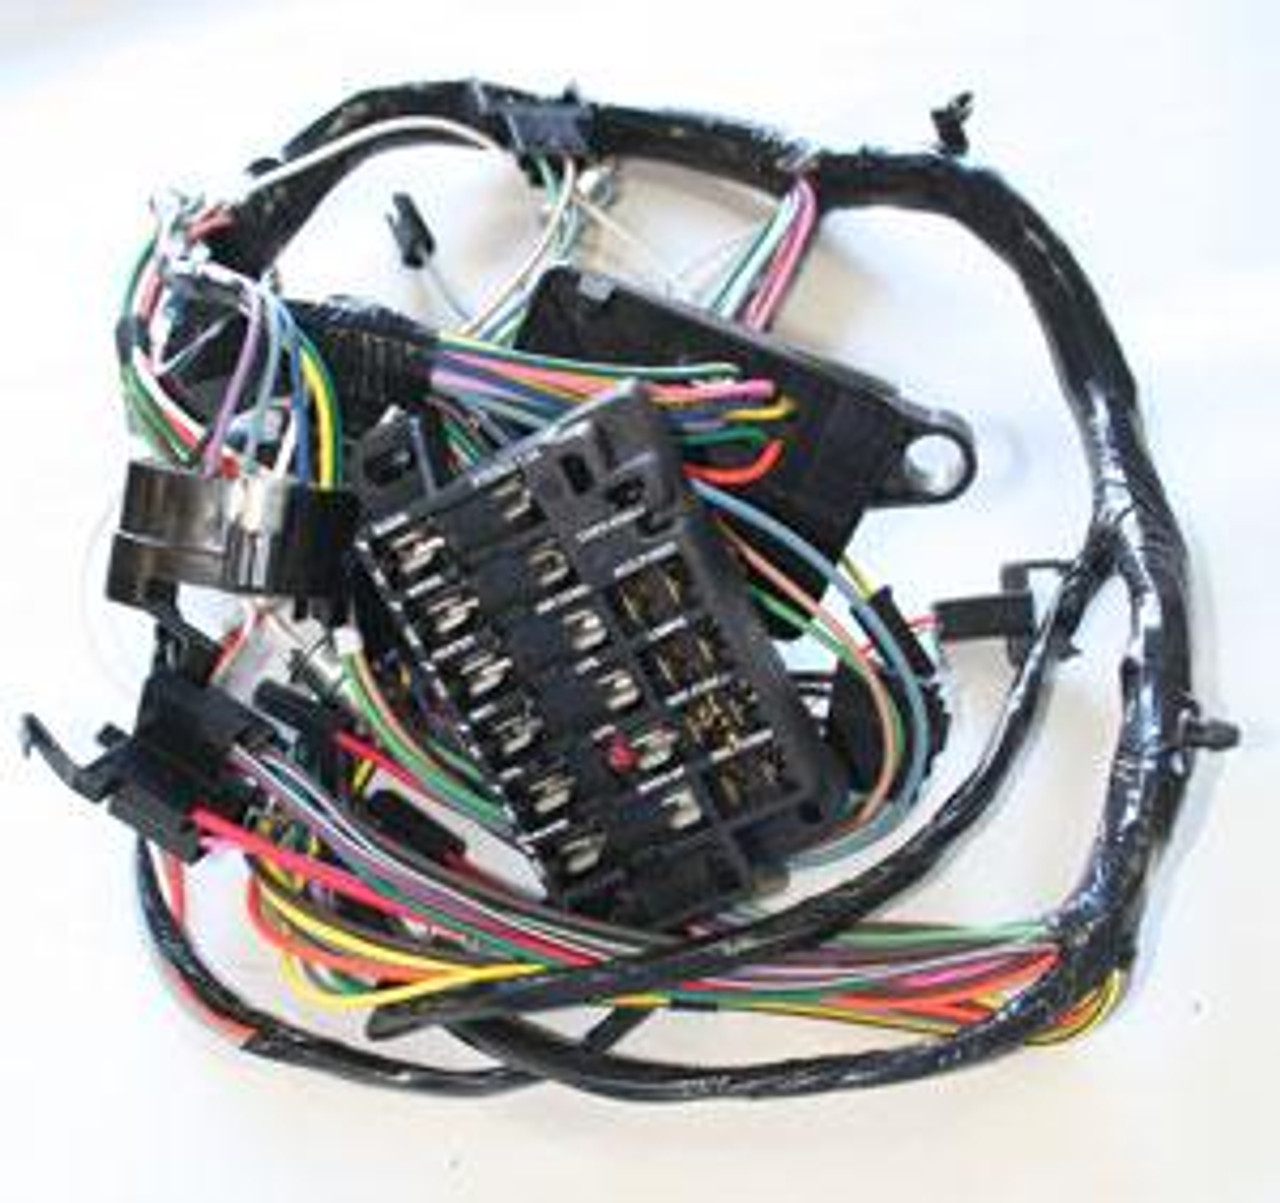 1966 Dash Harness, Console shift, with C.A.C. Air (CH60153)